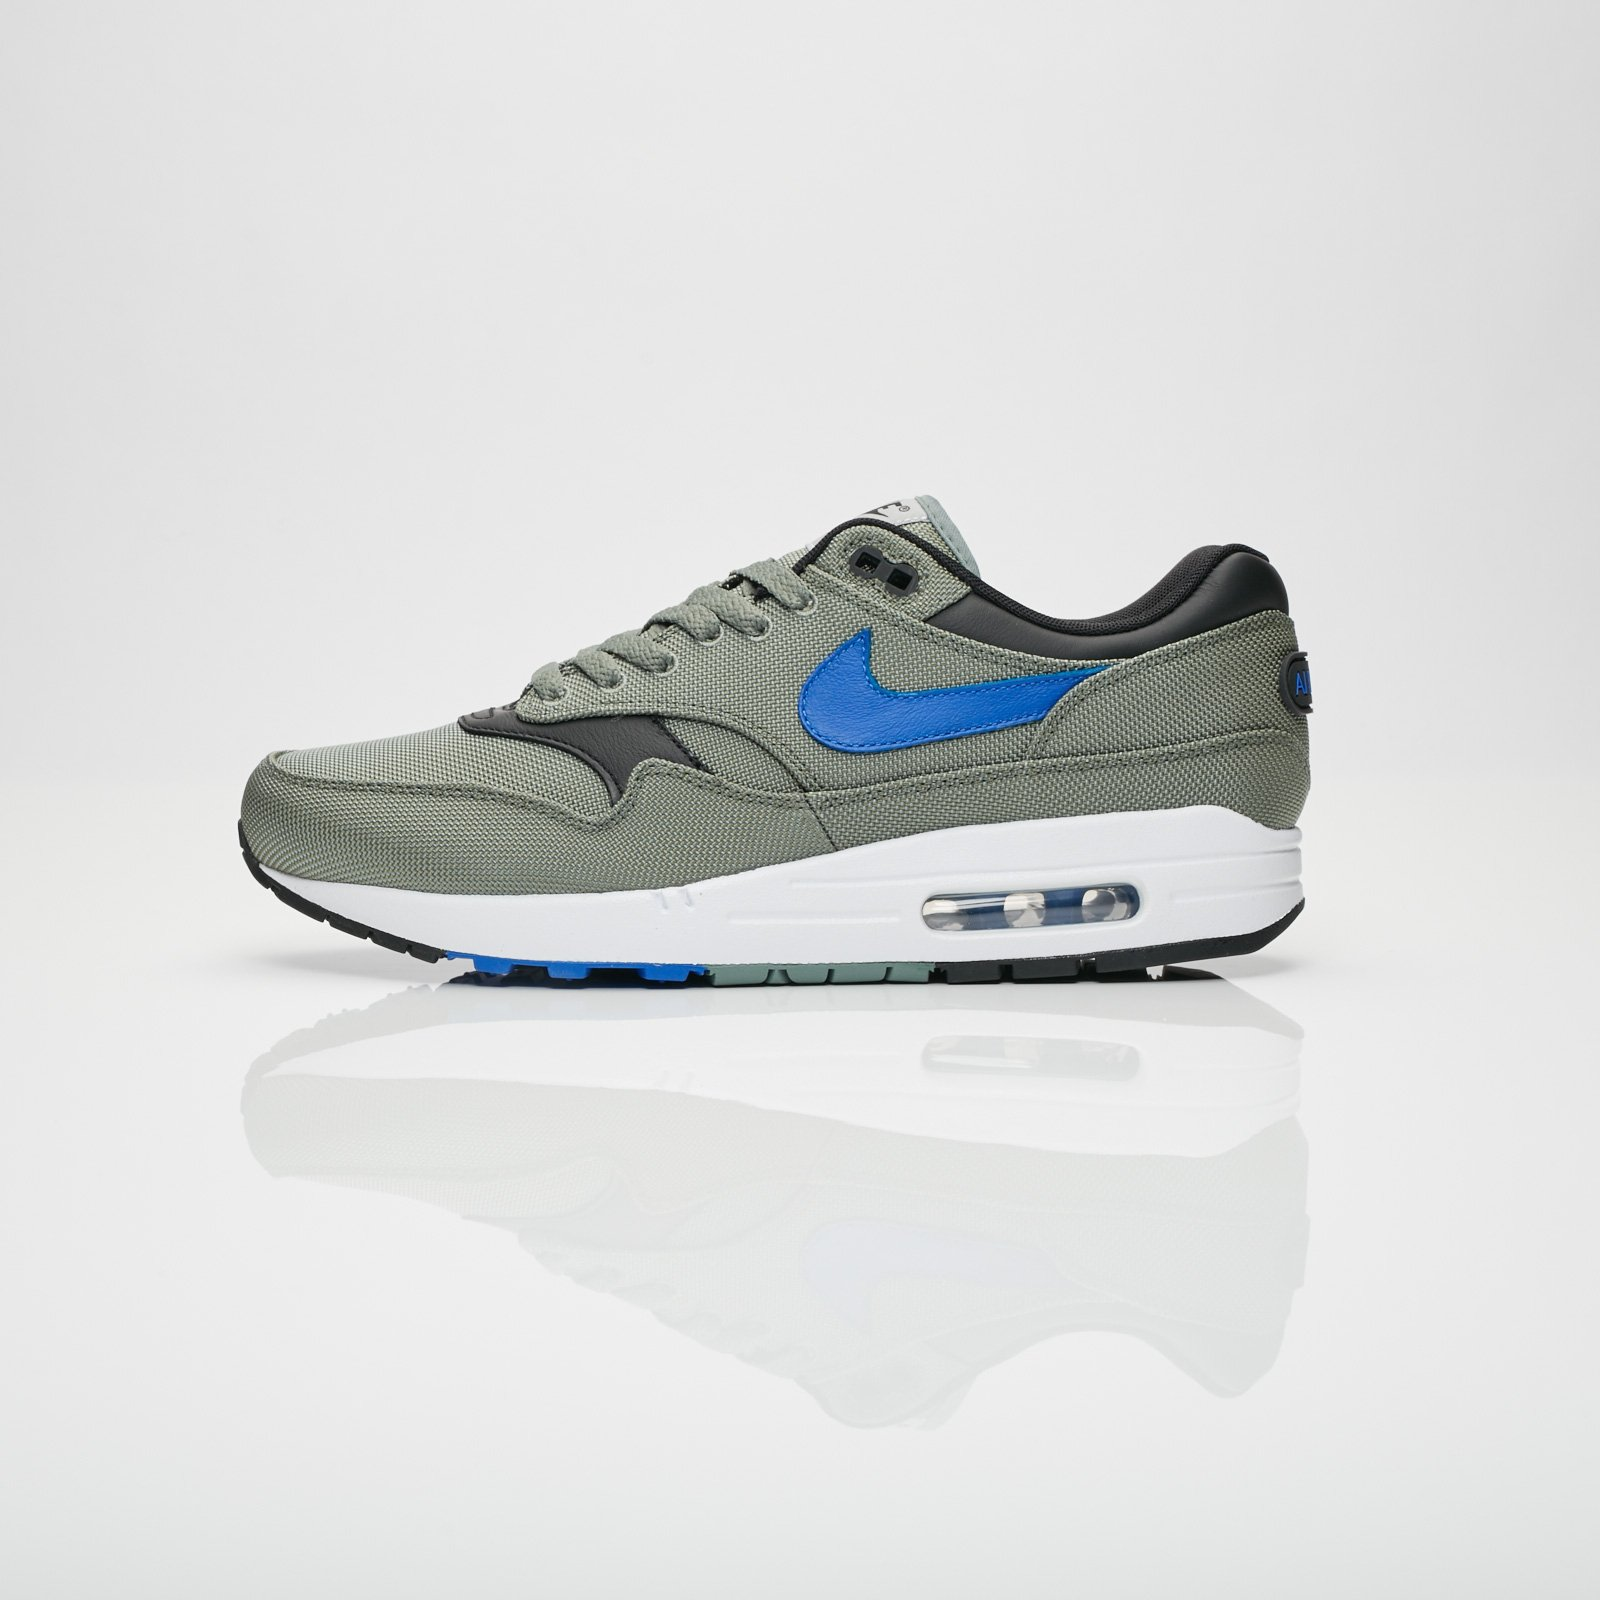 sneakers for cheap 2277a d16fd Nike Air Max 1 Premium - 875844-300 - Sneakersnstuff I Sneakers   Streetwear  online seit 1999